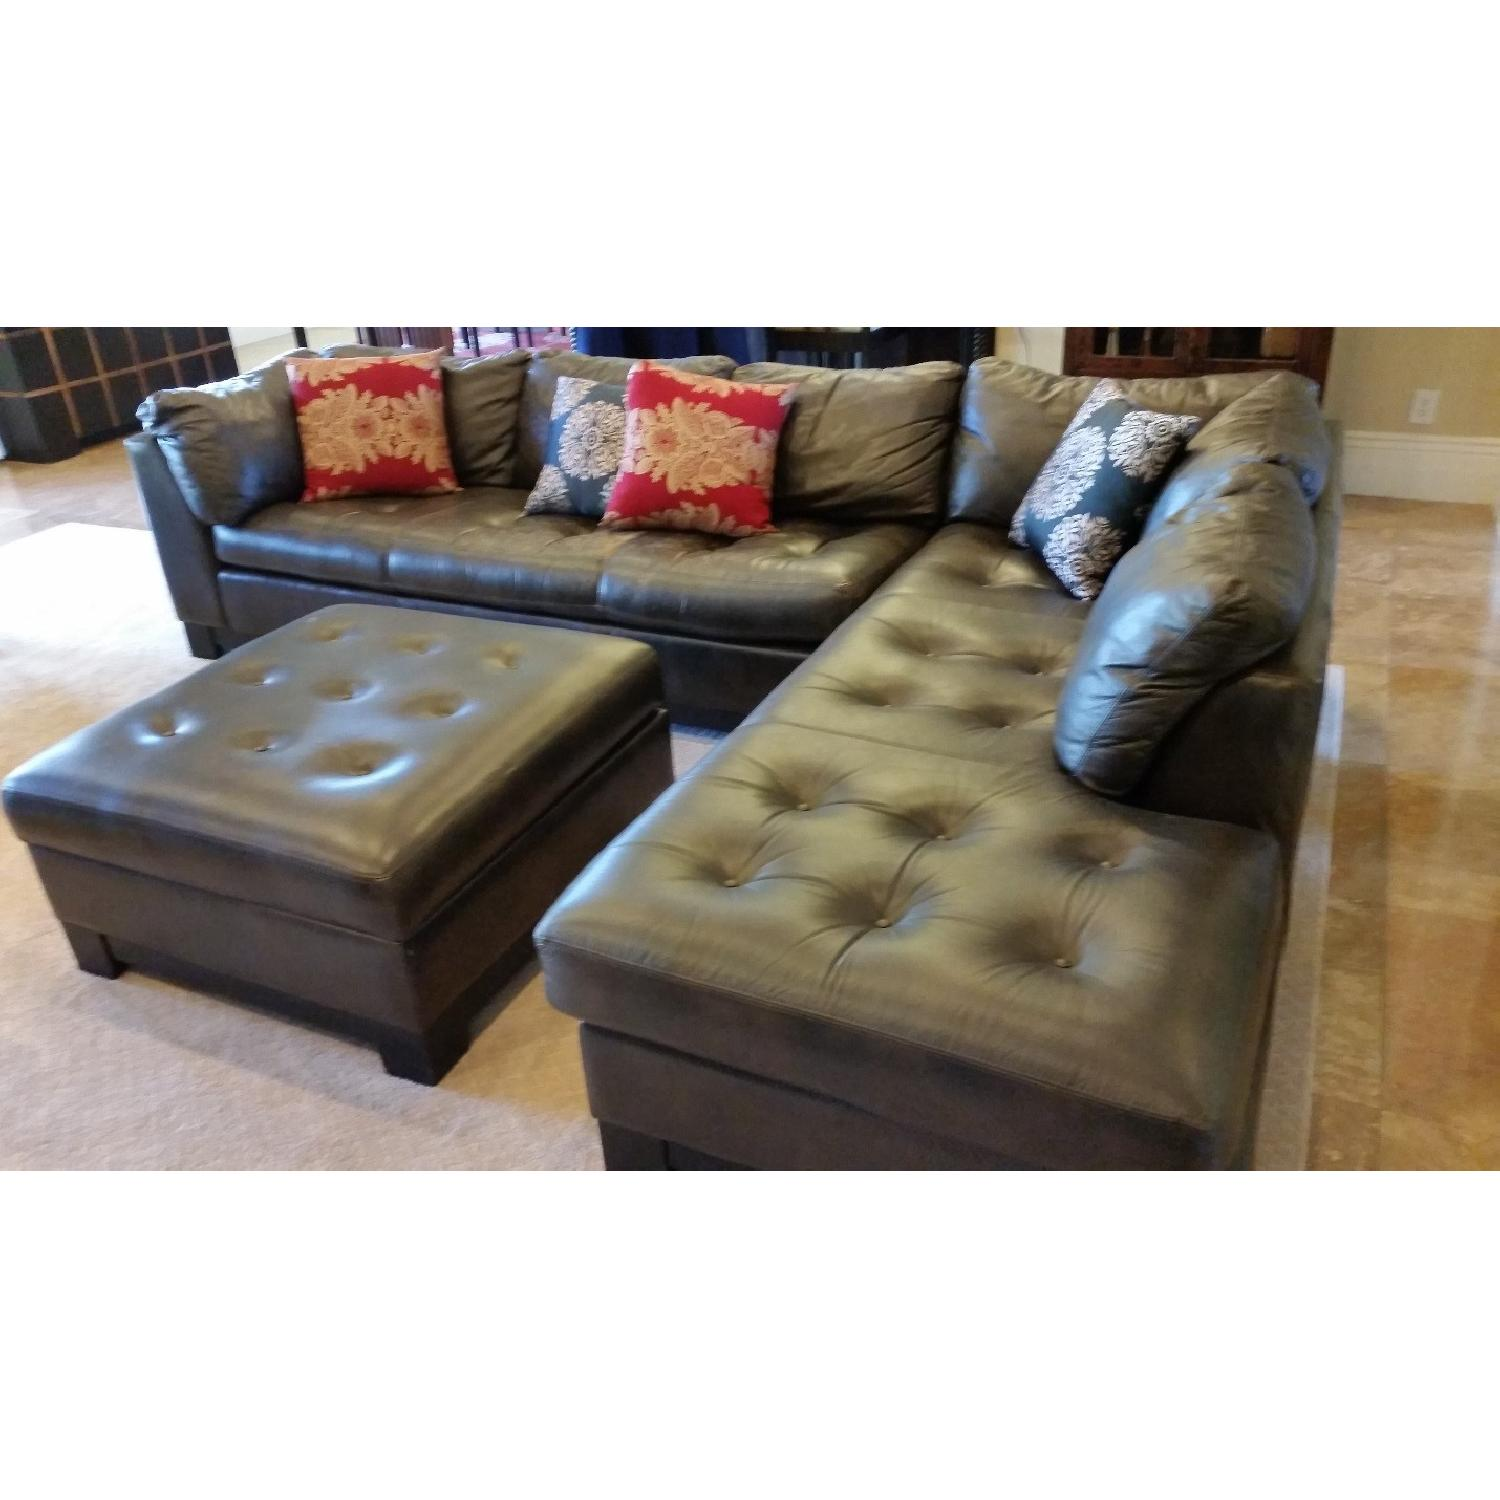 Brown Tufted Leather 2-Piece Sectional Sofa - image-3